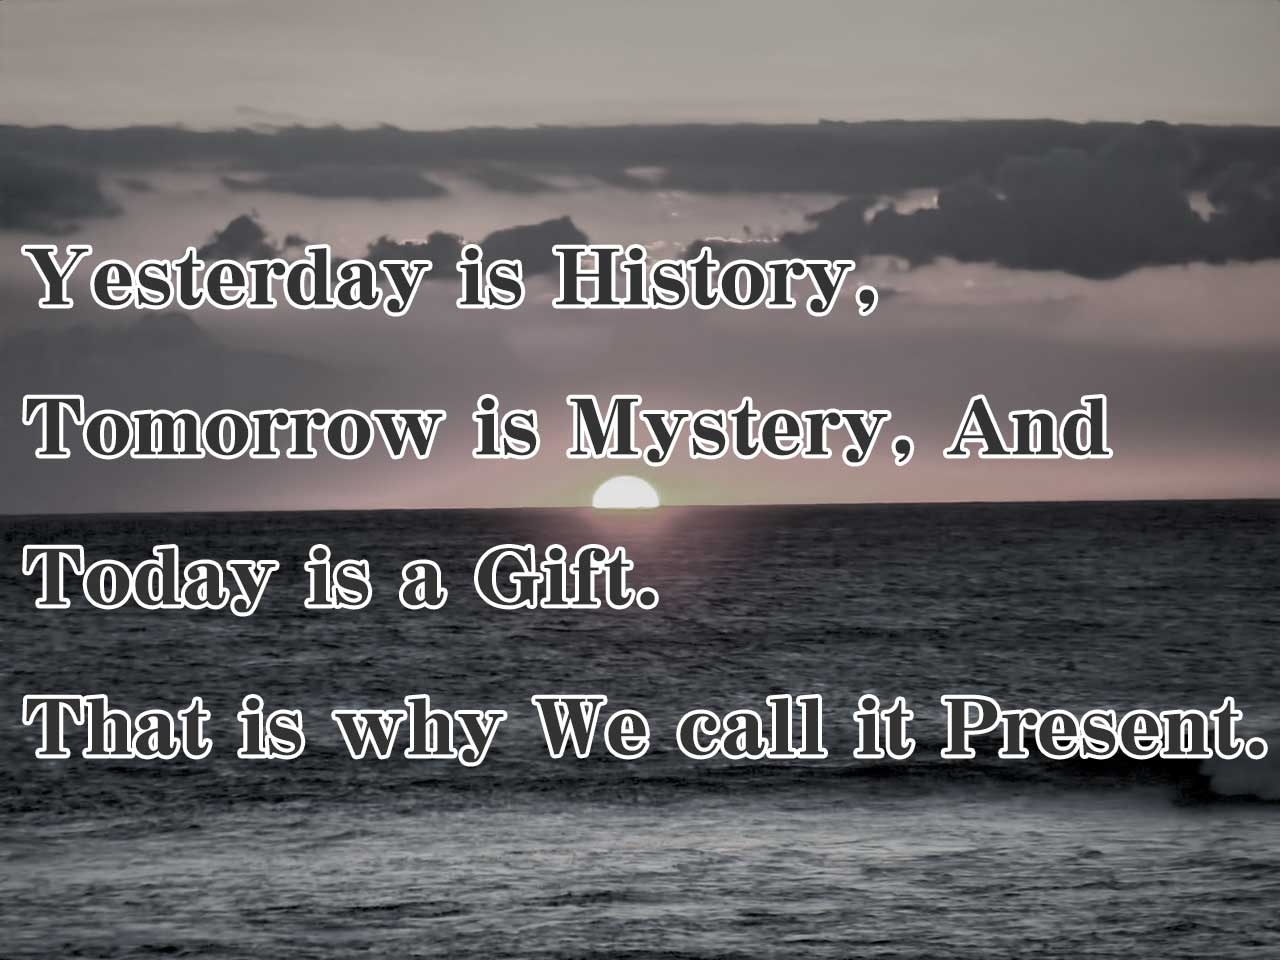 Yesterday is history.Today is a gift.